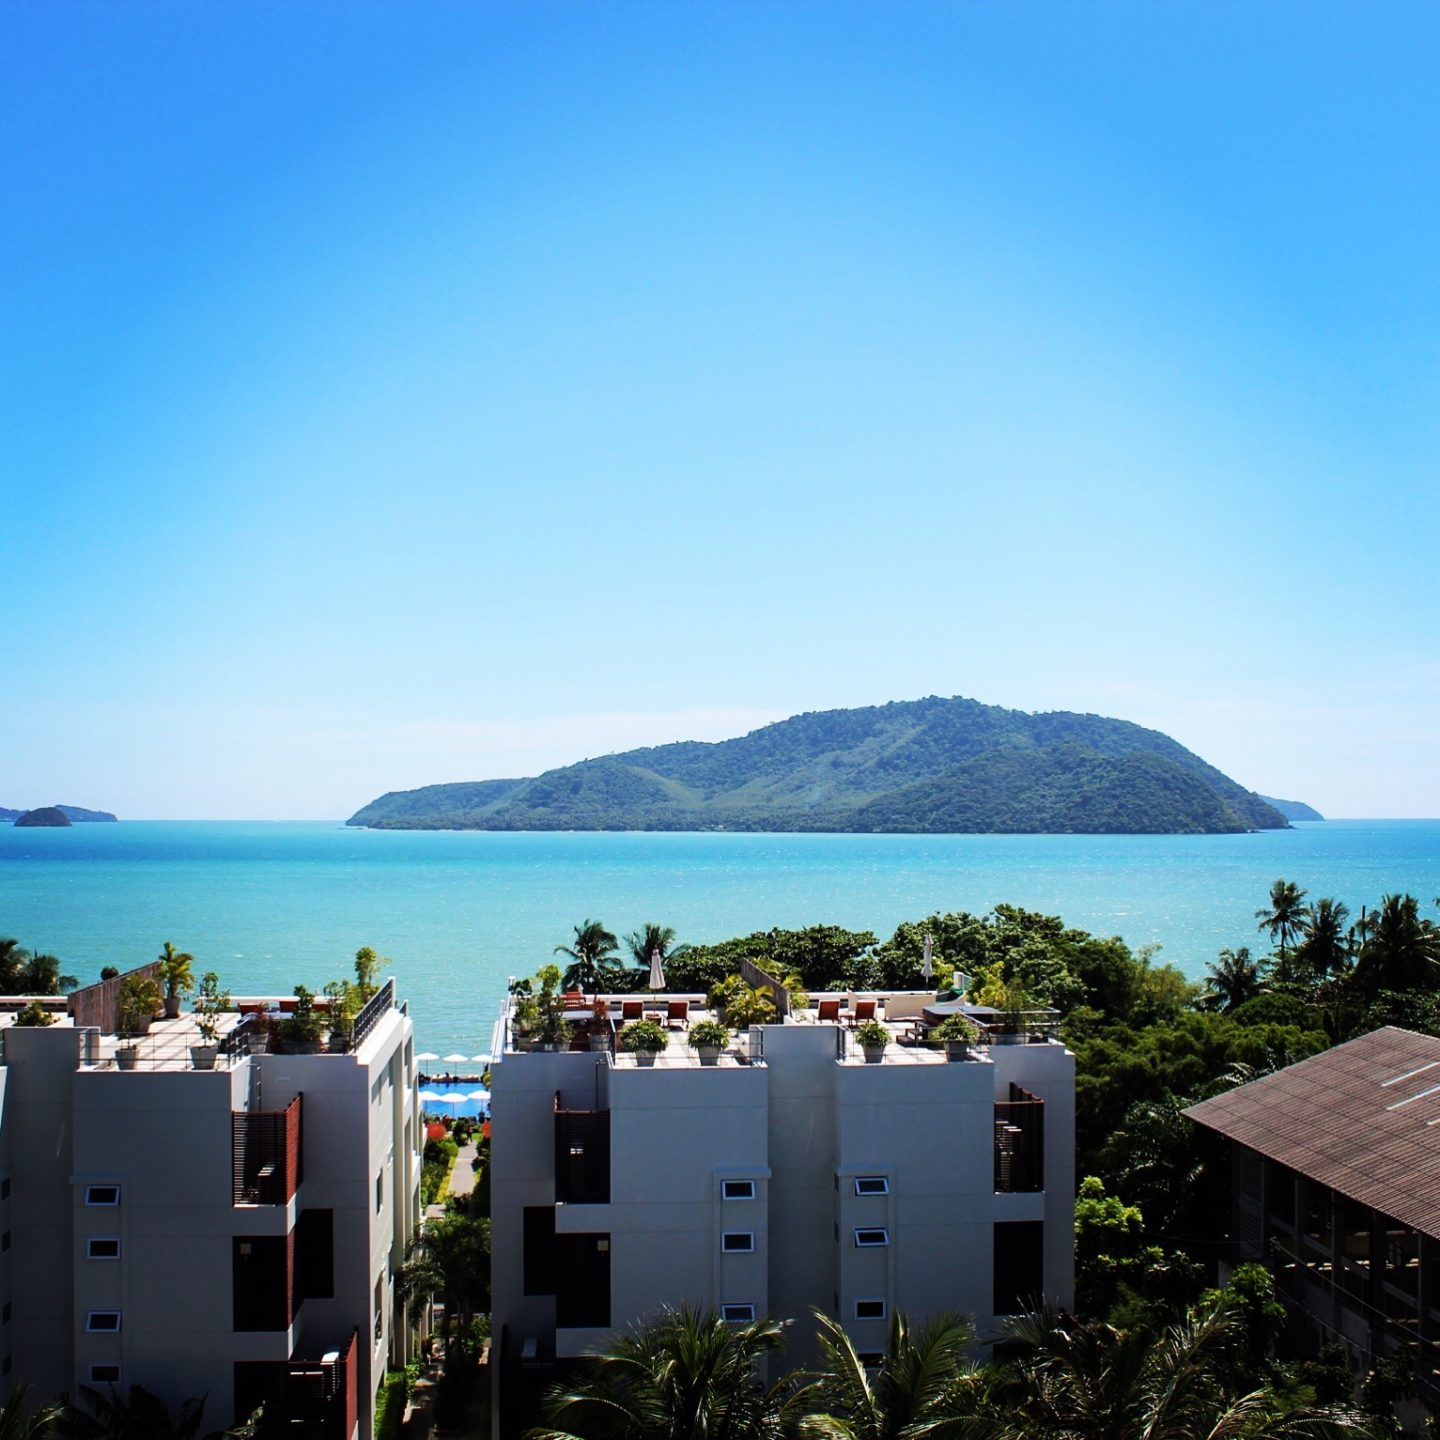 Where to stay in Phuket – Where the party is or calm and relaxed? The Best Places to Stay in Phuket!